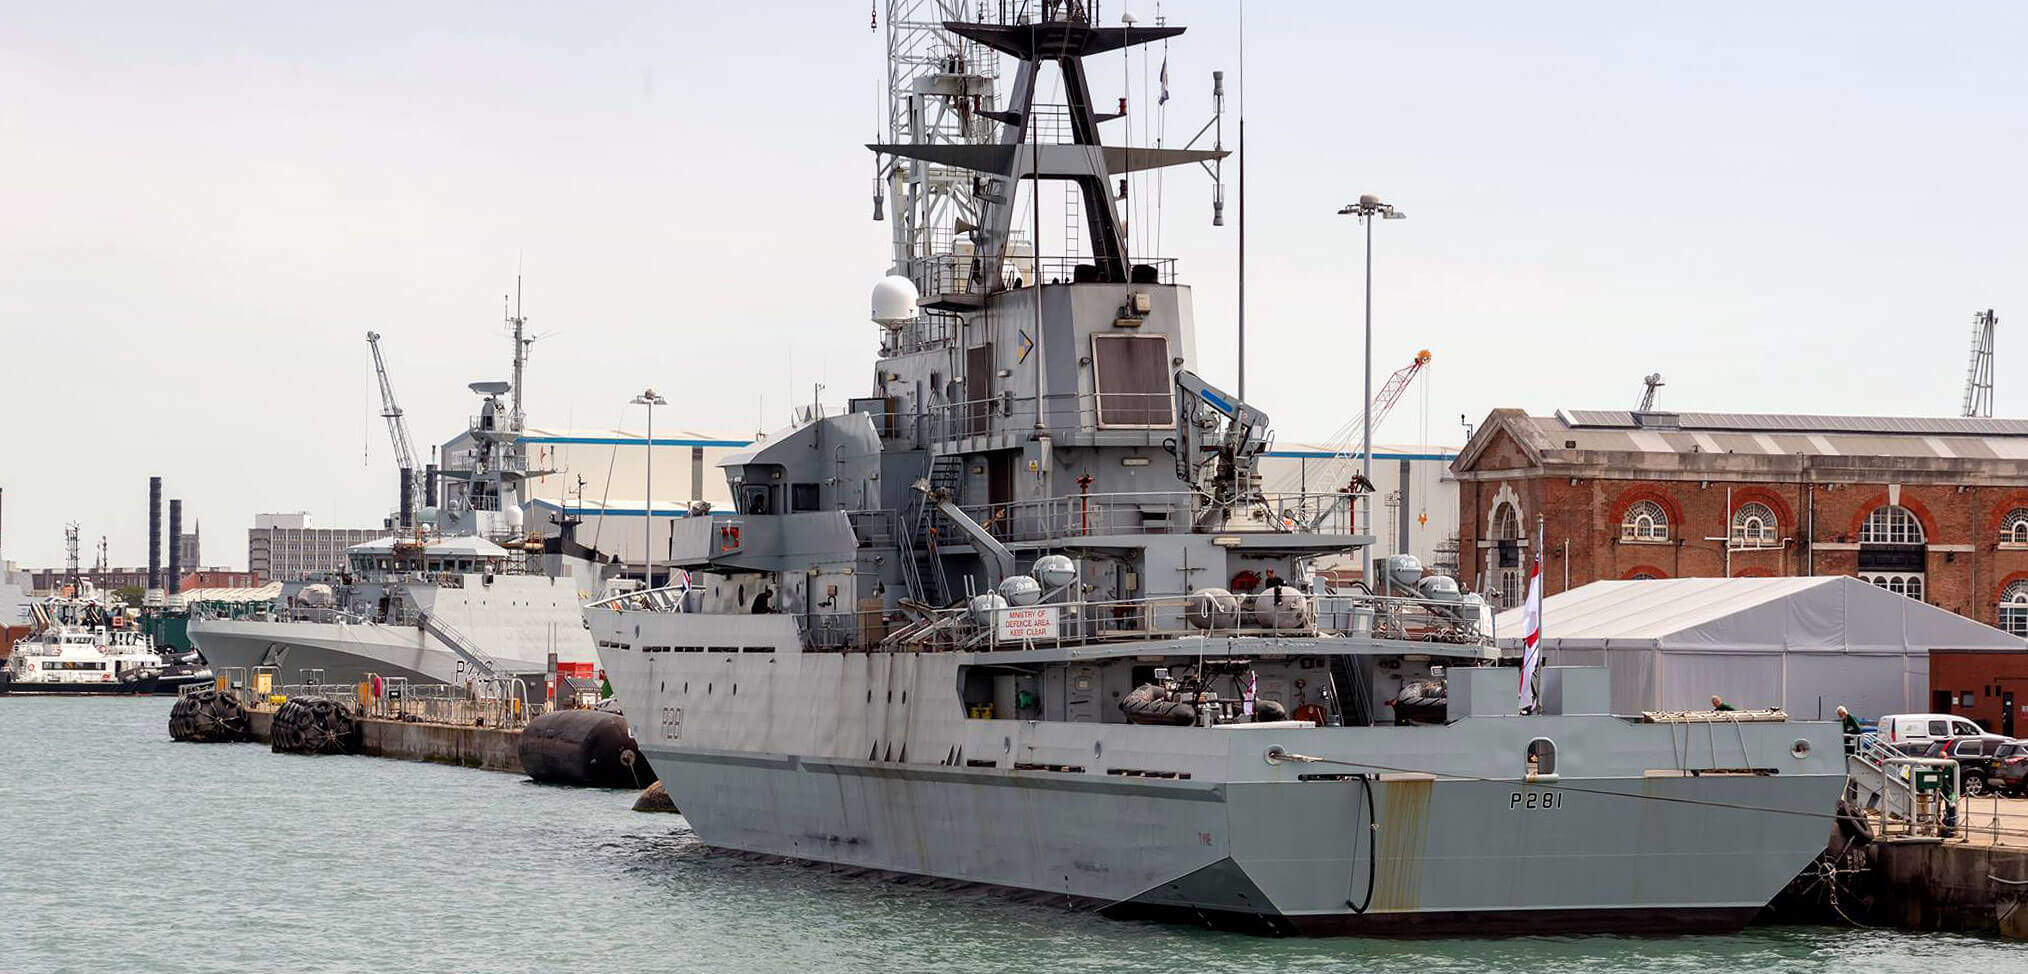 HMS Tyne returns to service after being paid off in May